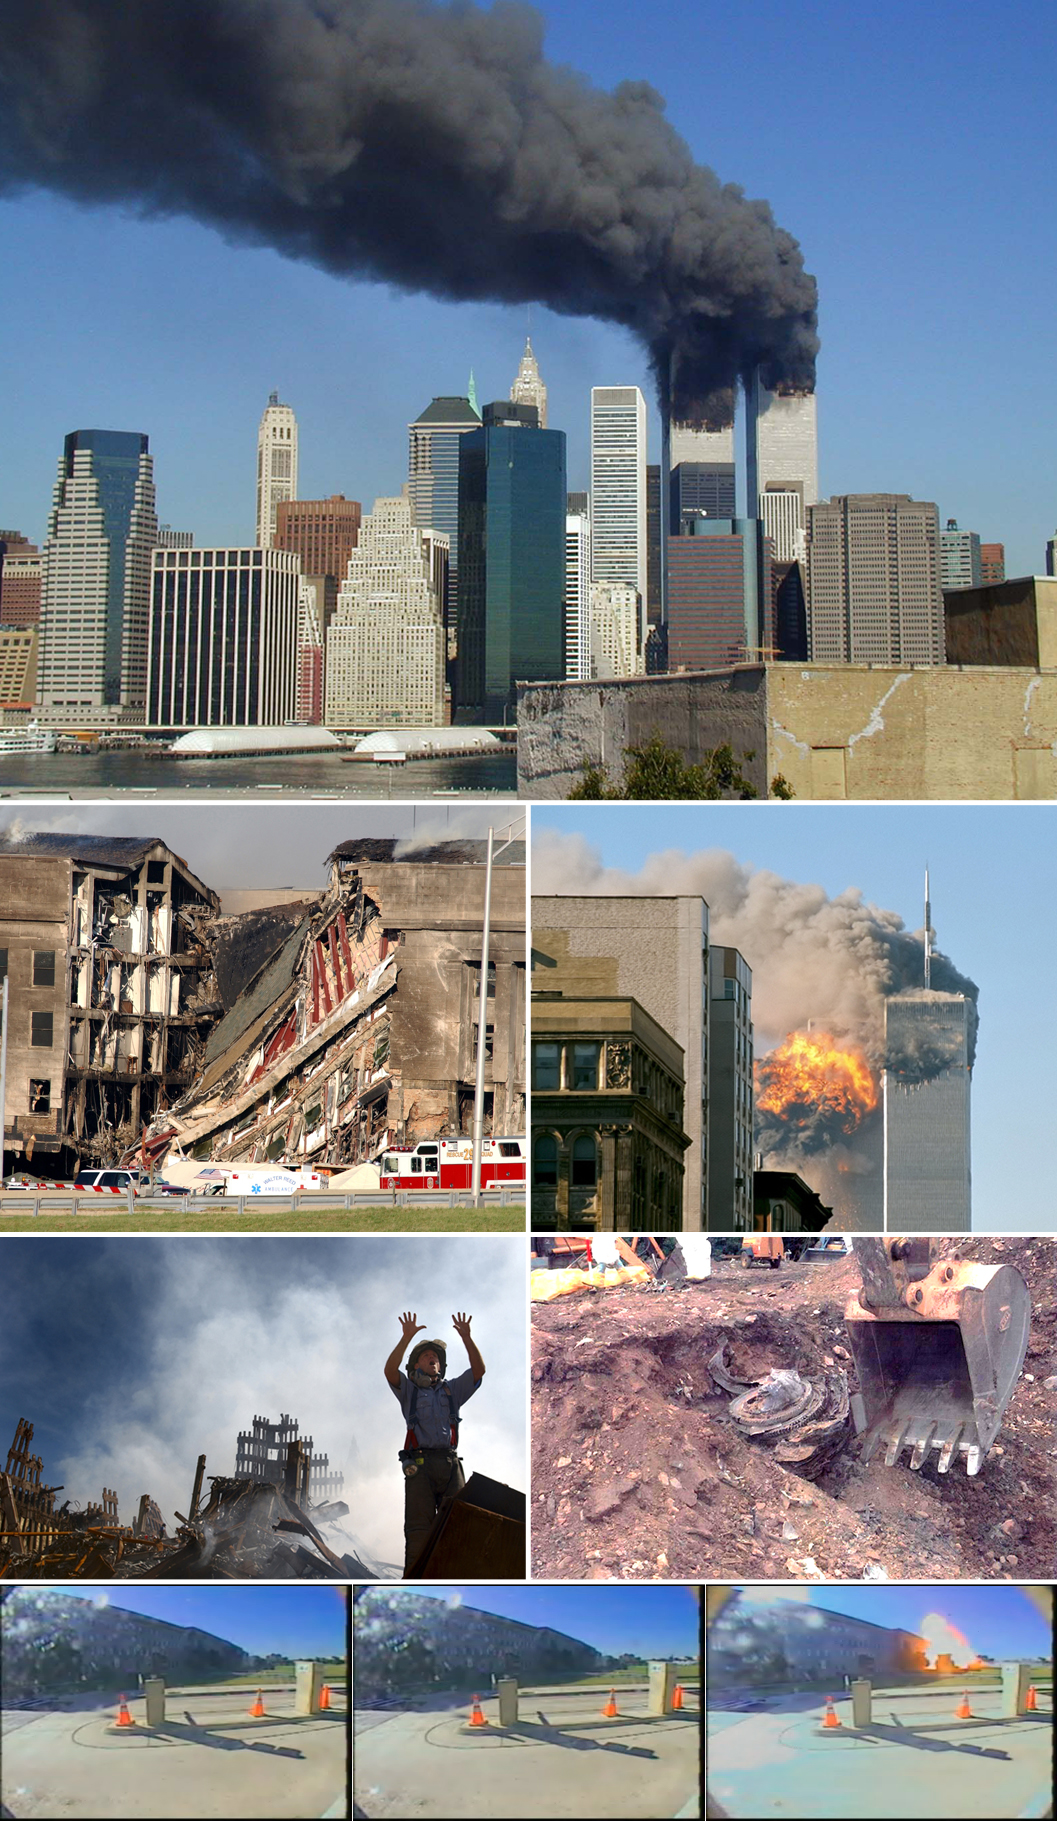 http://upload.wikimedia.org/wikipedia/commons/6/65/September_11_Photo_Montage.jpg